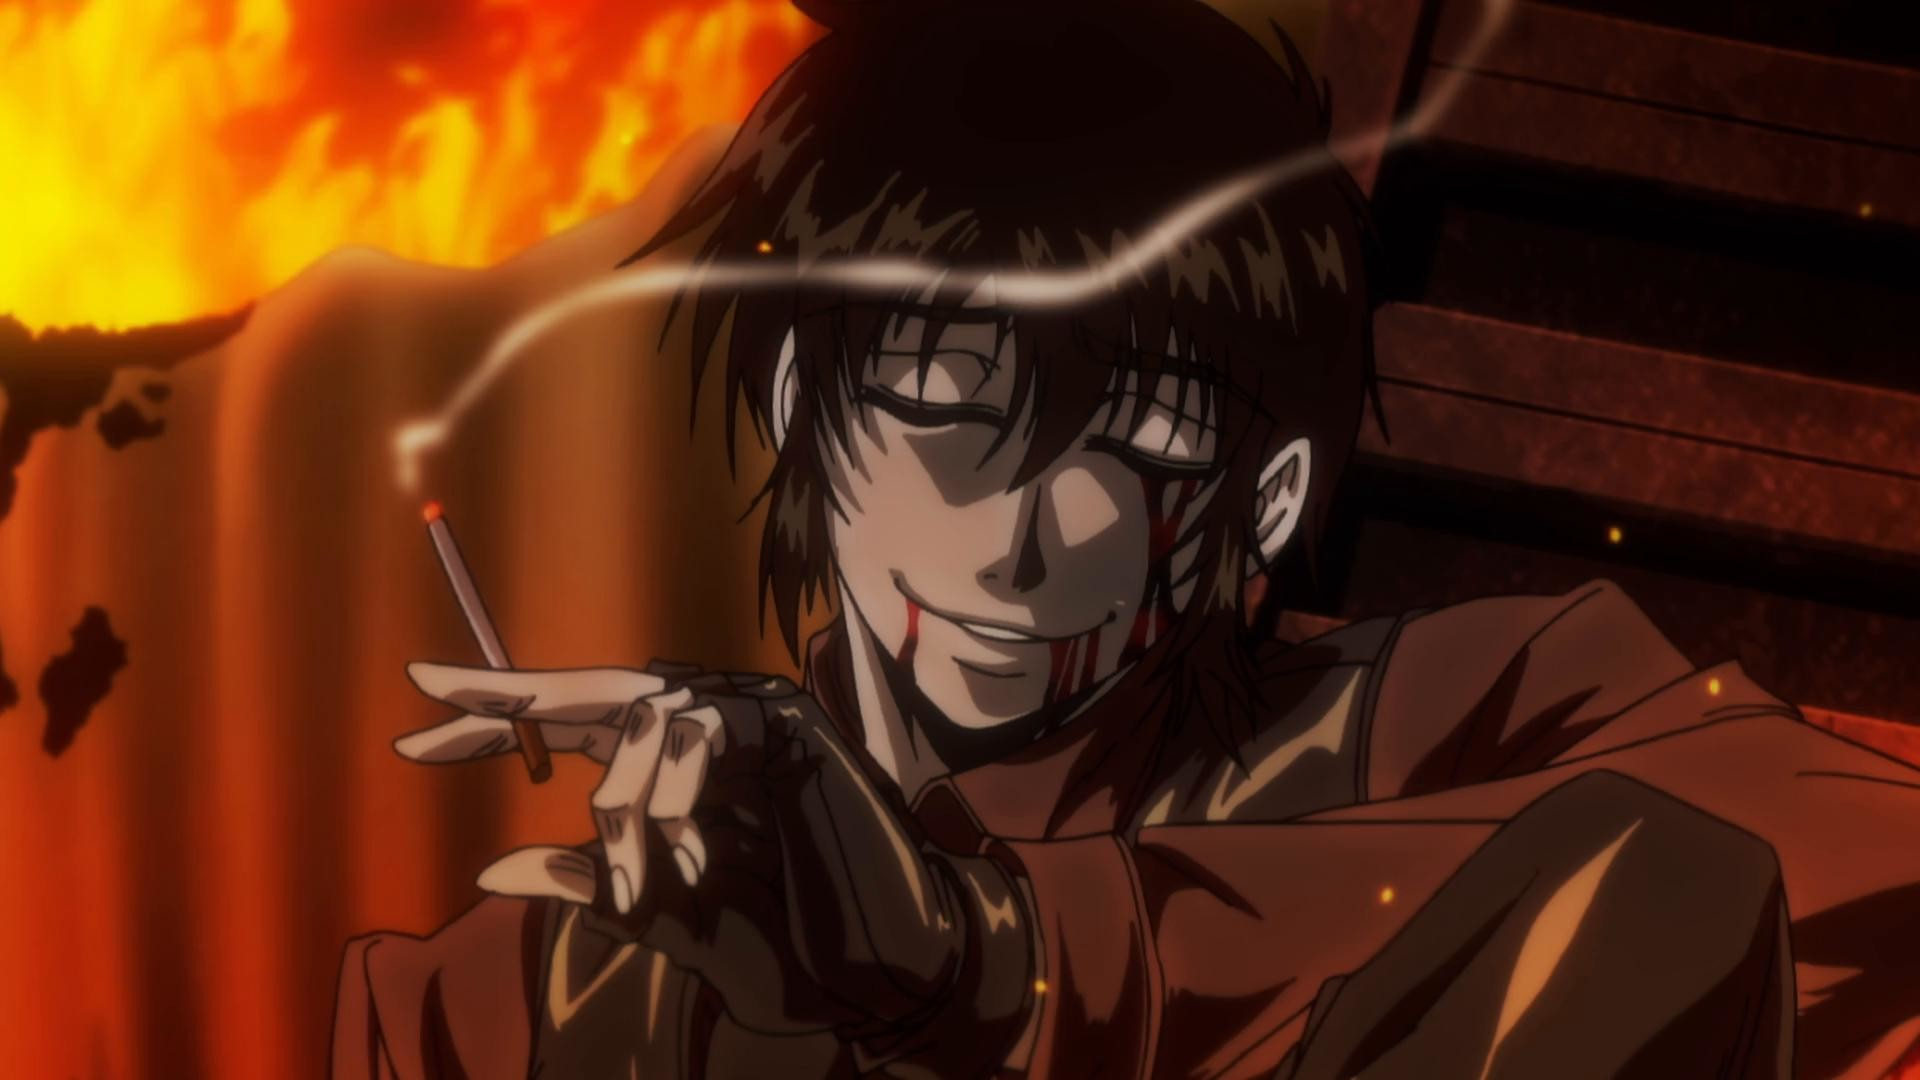 Res: 1920x1080, hellsing ultimate wallpaper hd #667721